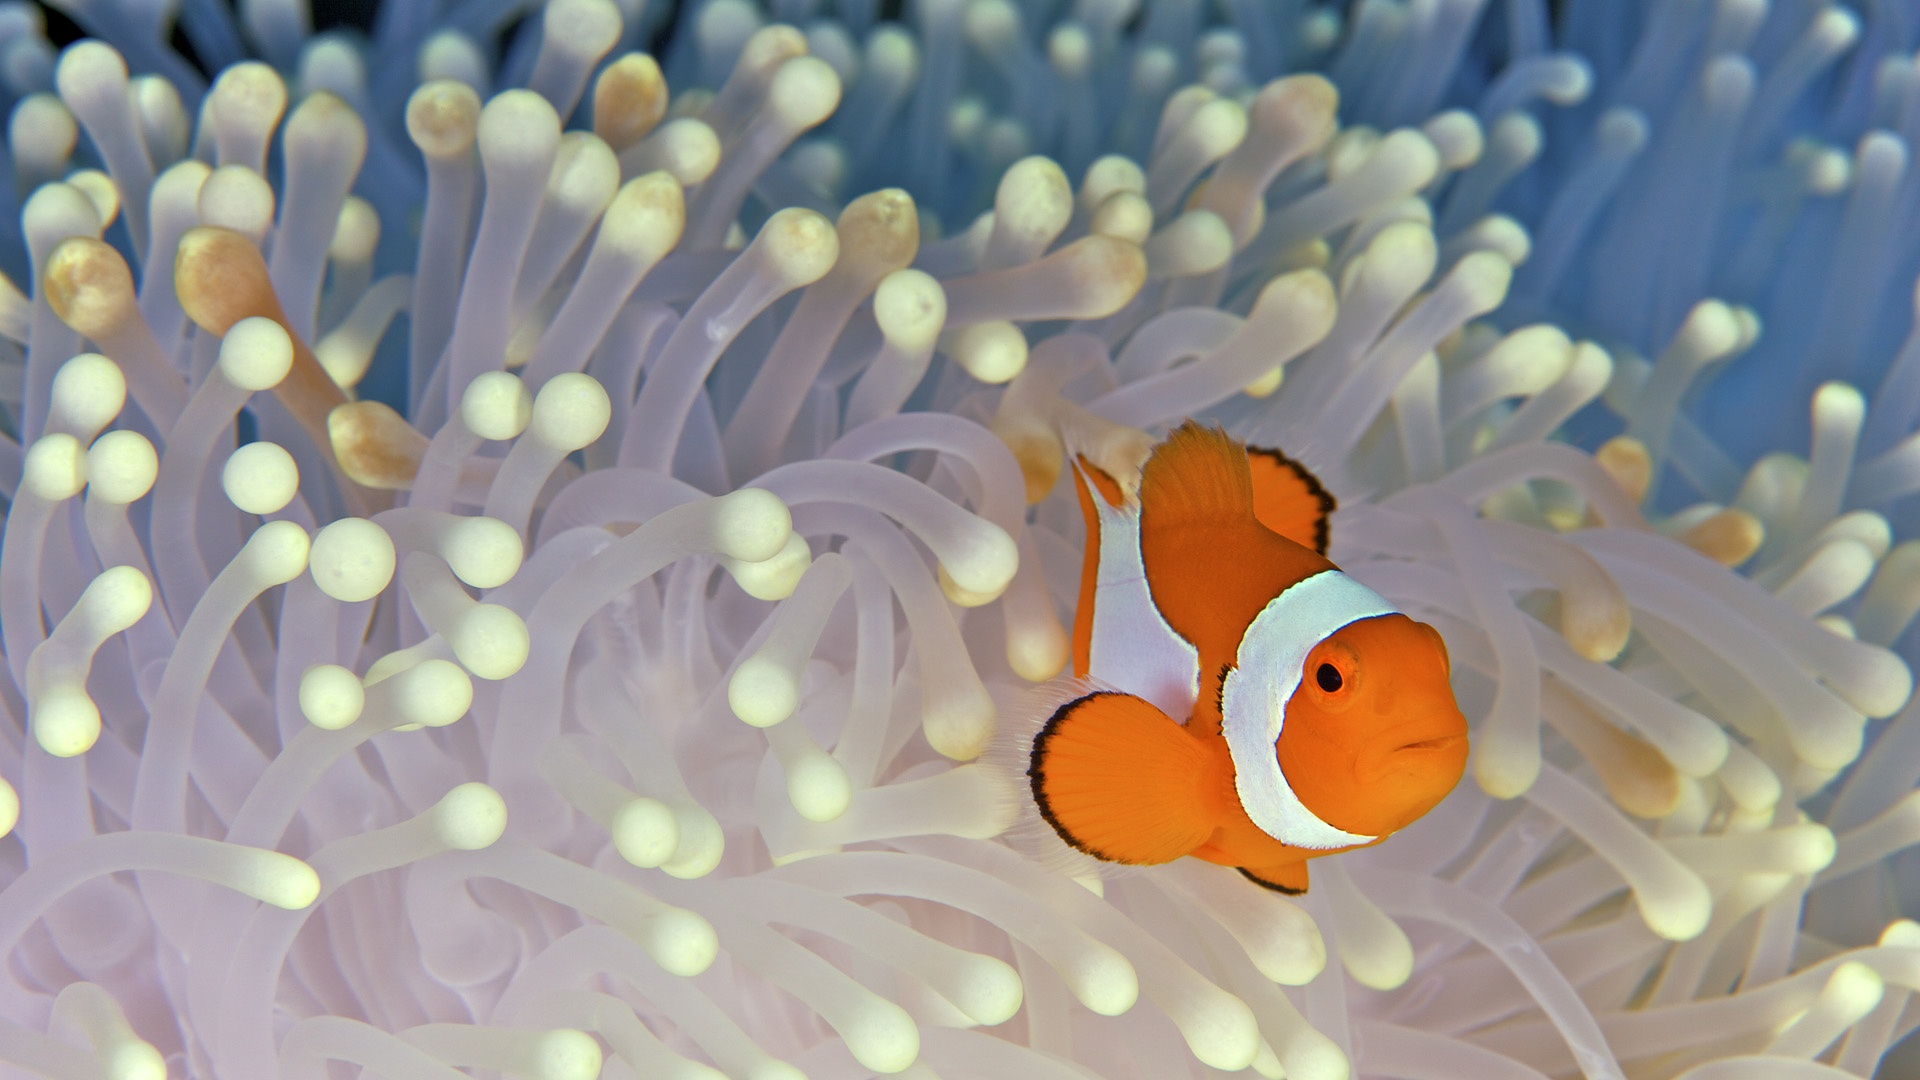 Clown Fish Wallpaper 1920x1080